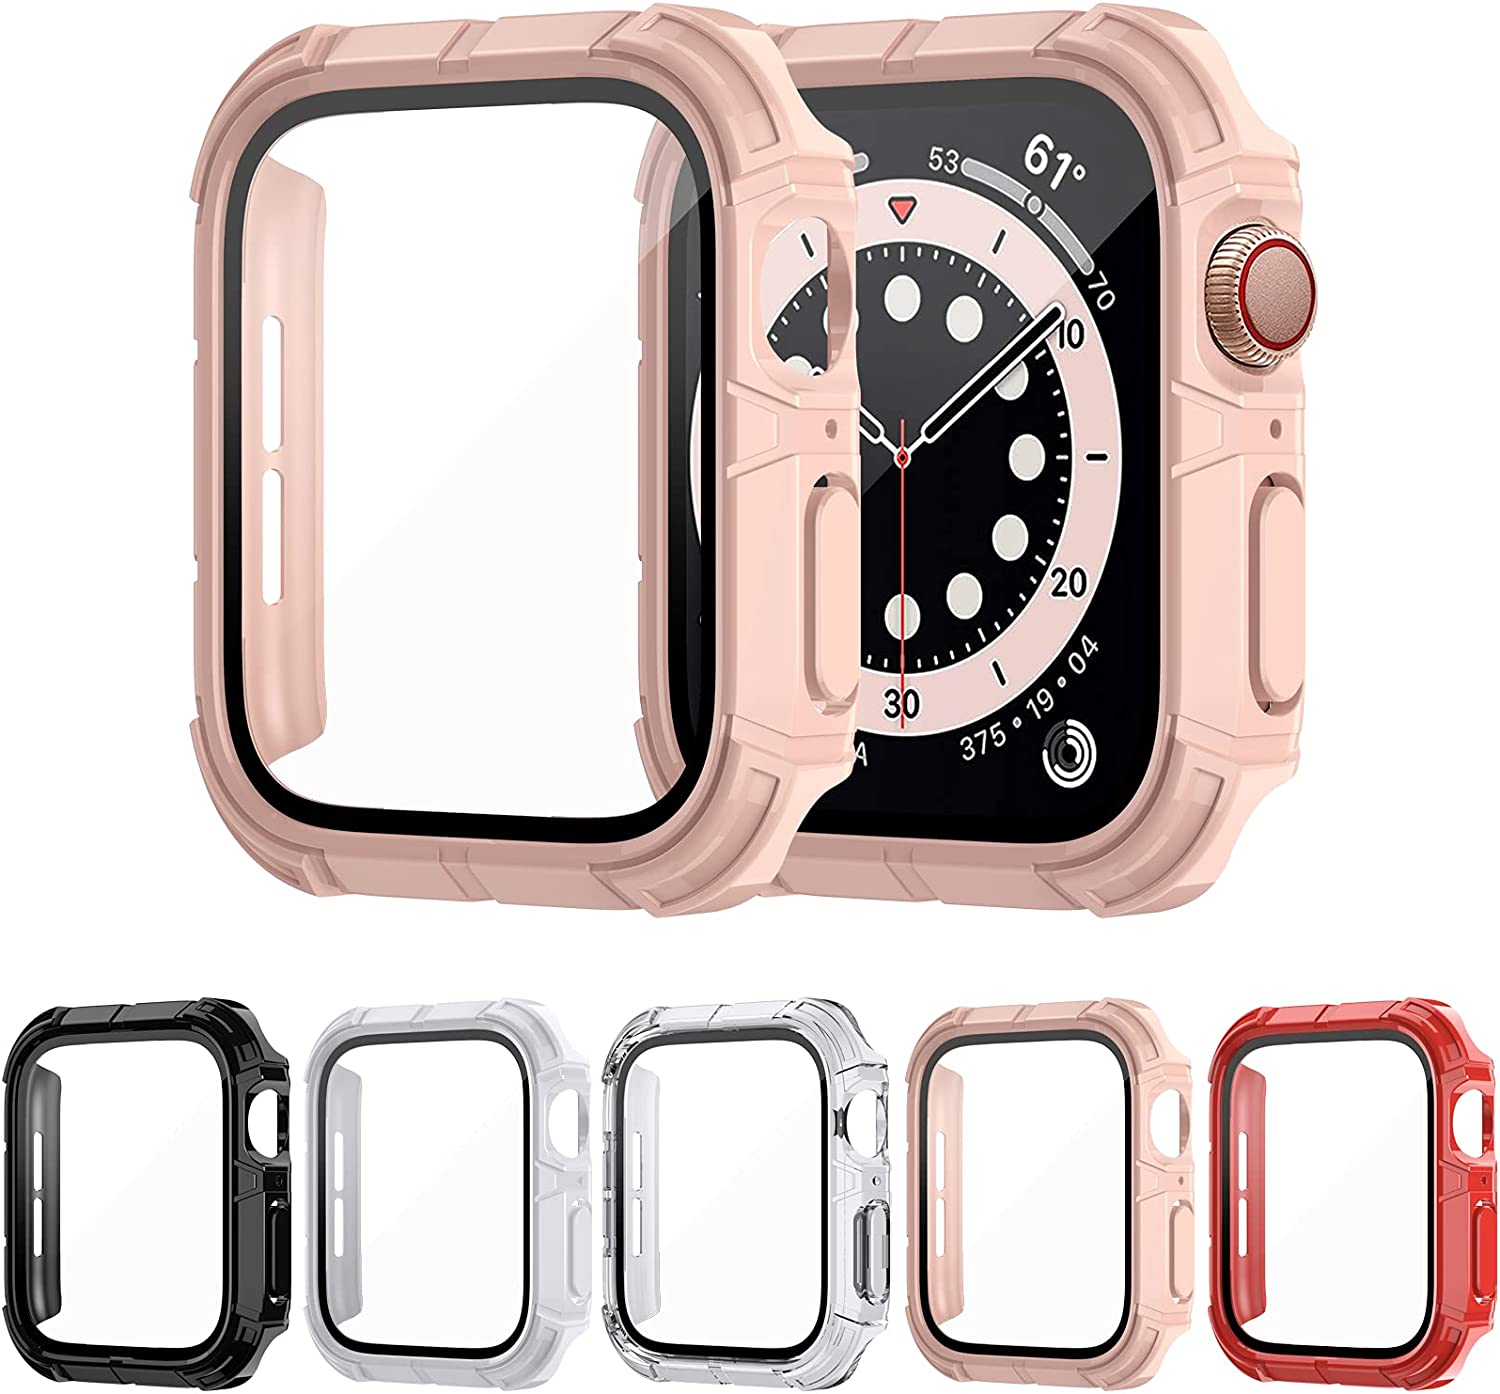 NANW 5-Pack Rugged Case Compatible with Apple Watch Series 6/5/4/SE,Hard Screen Protector PC Protective Cover with Tempered Glass, Sport Military Style Bumper Compatible with iWatch Series 6/5/4/SE